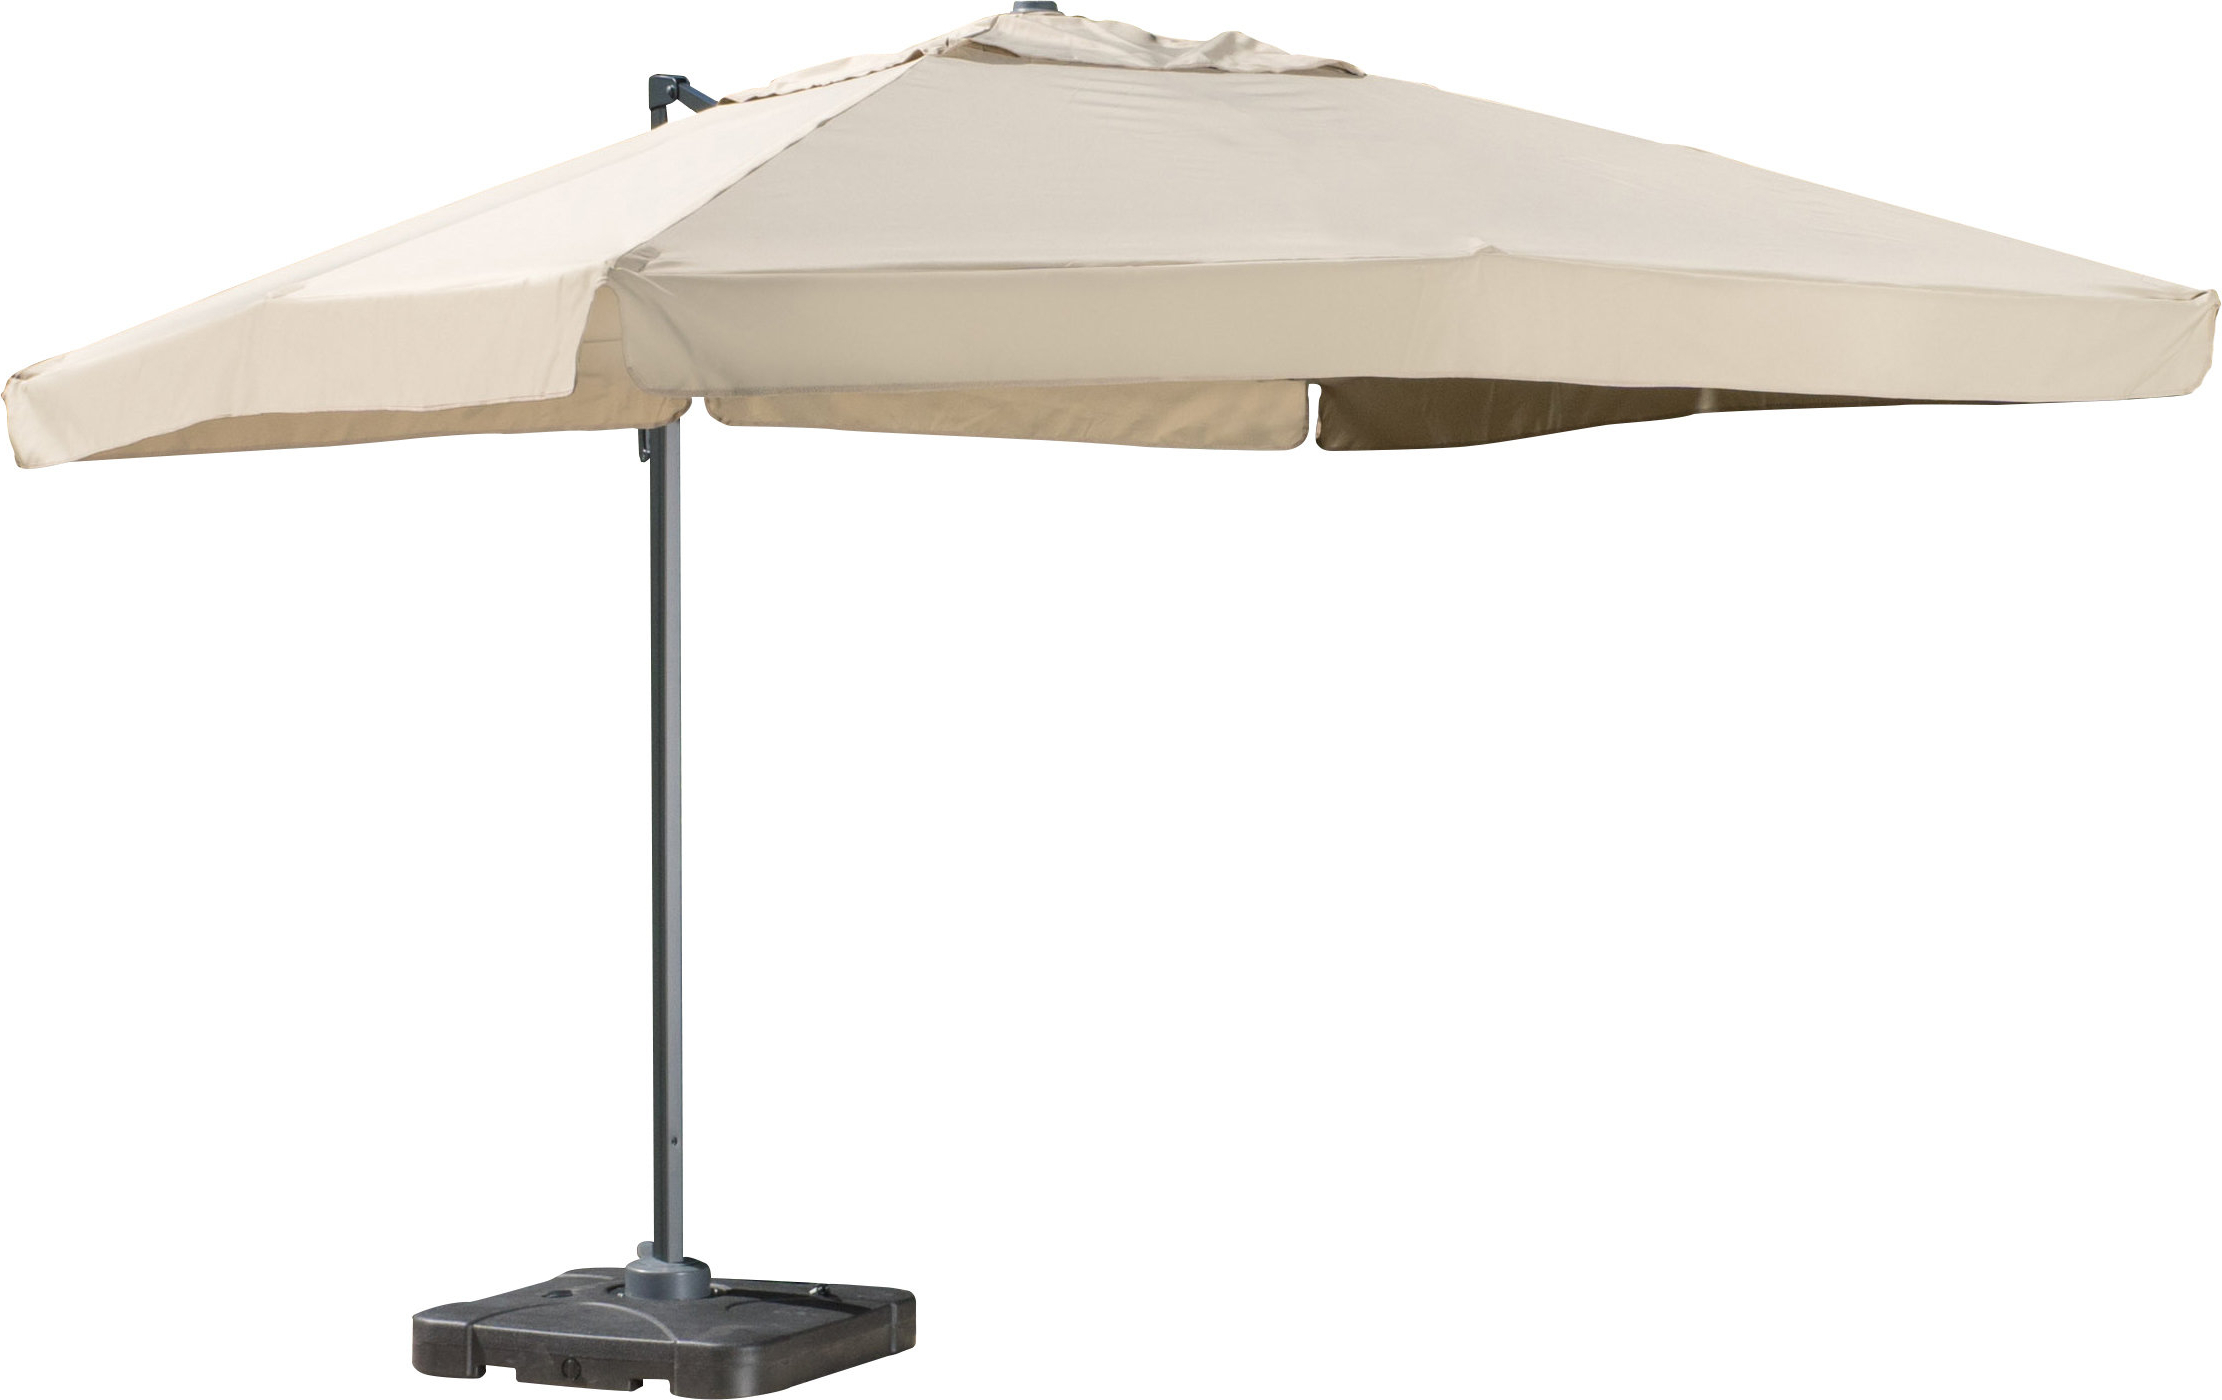 Bondi 9.8' Square Cantilever Umbrella Pertaining To Recent Ketcham Cantilever Umbrellas (Gallery 5 of 20)